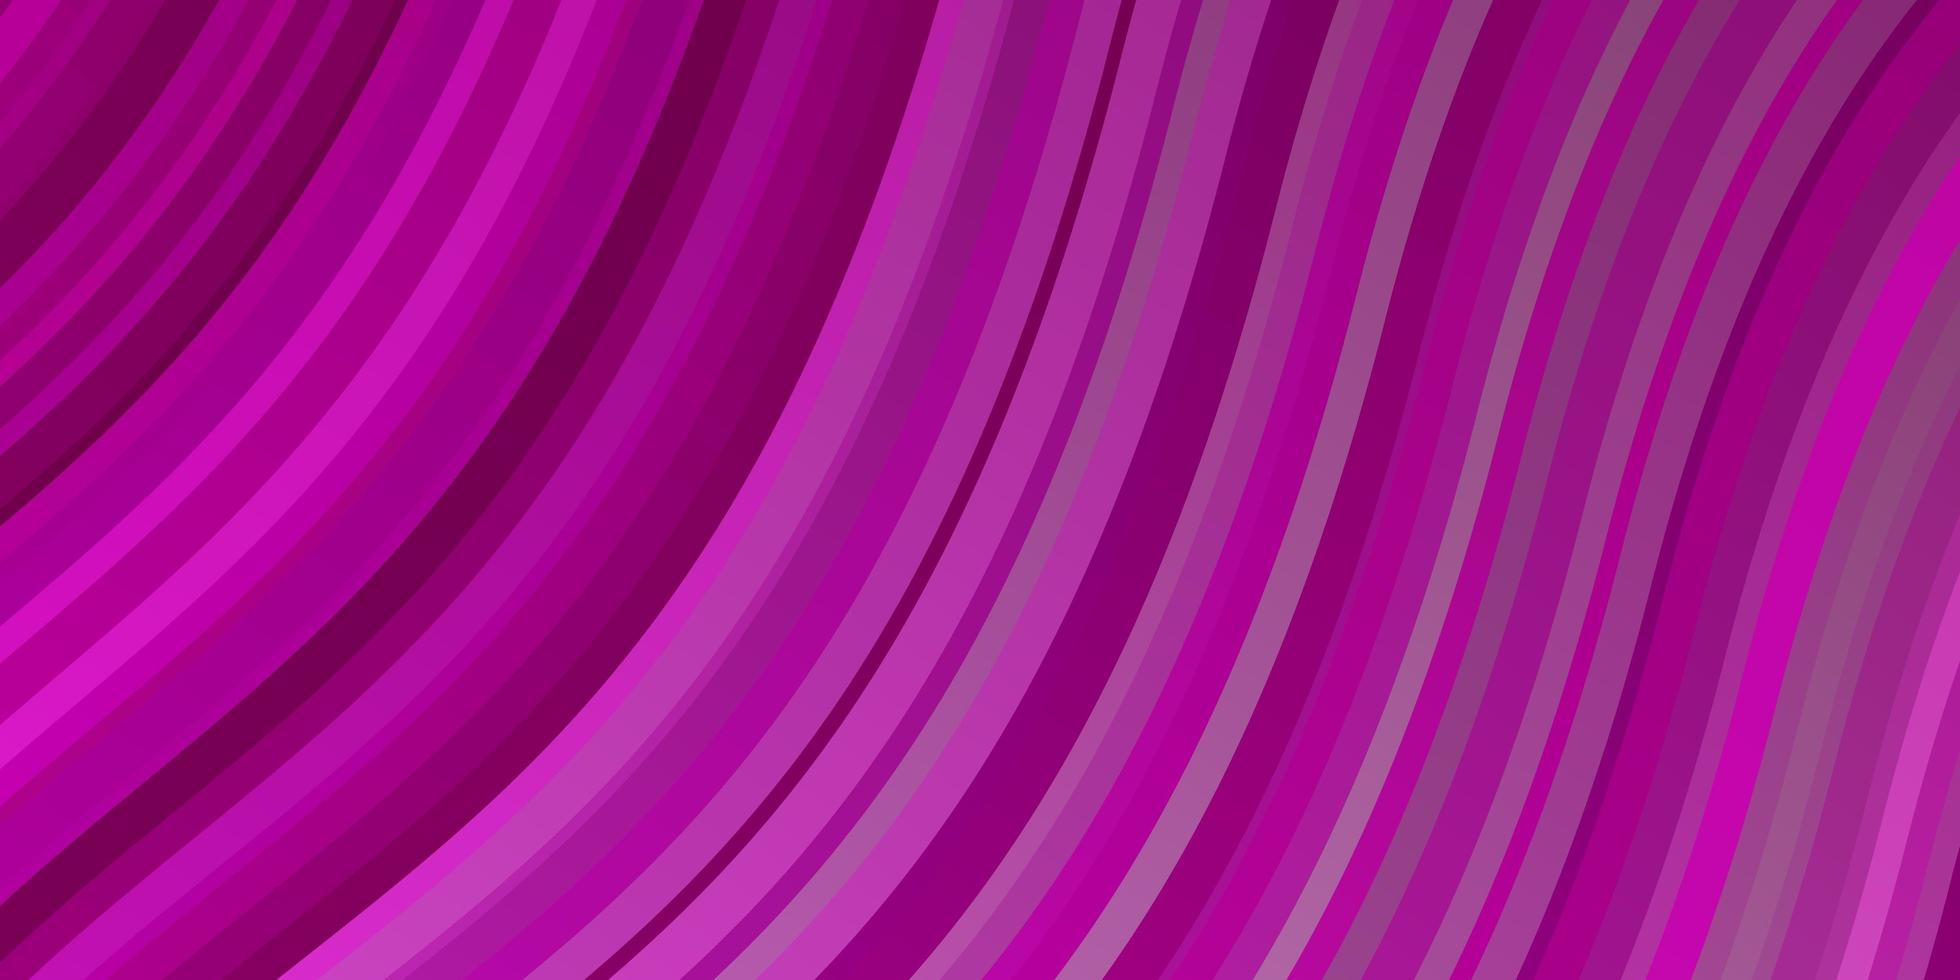 Light Pink vector pattern with curved lines.